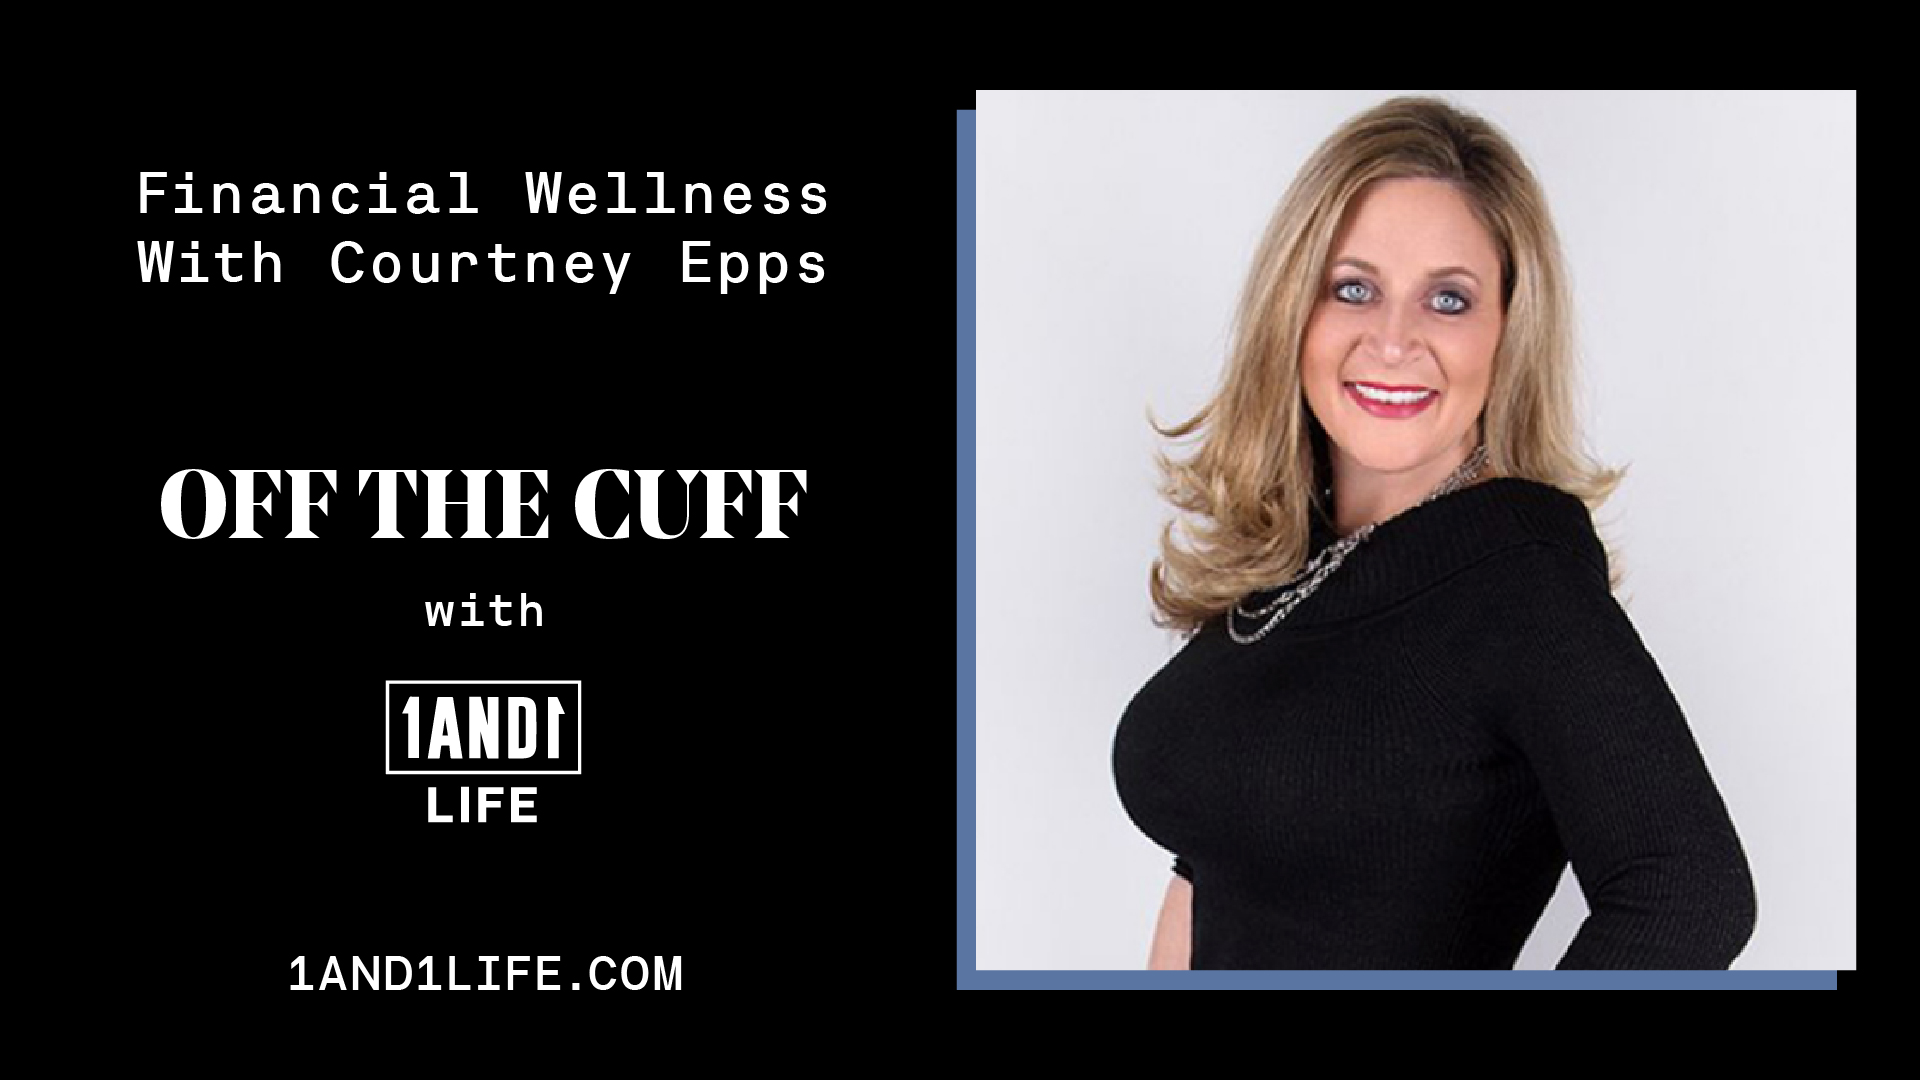 Courtney Epps - Off The Cuff - 1AND1 Life